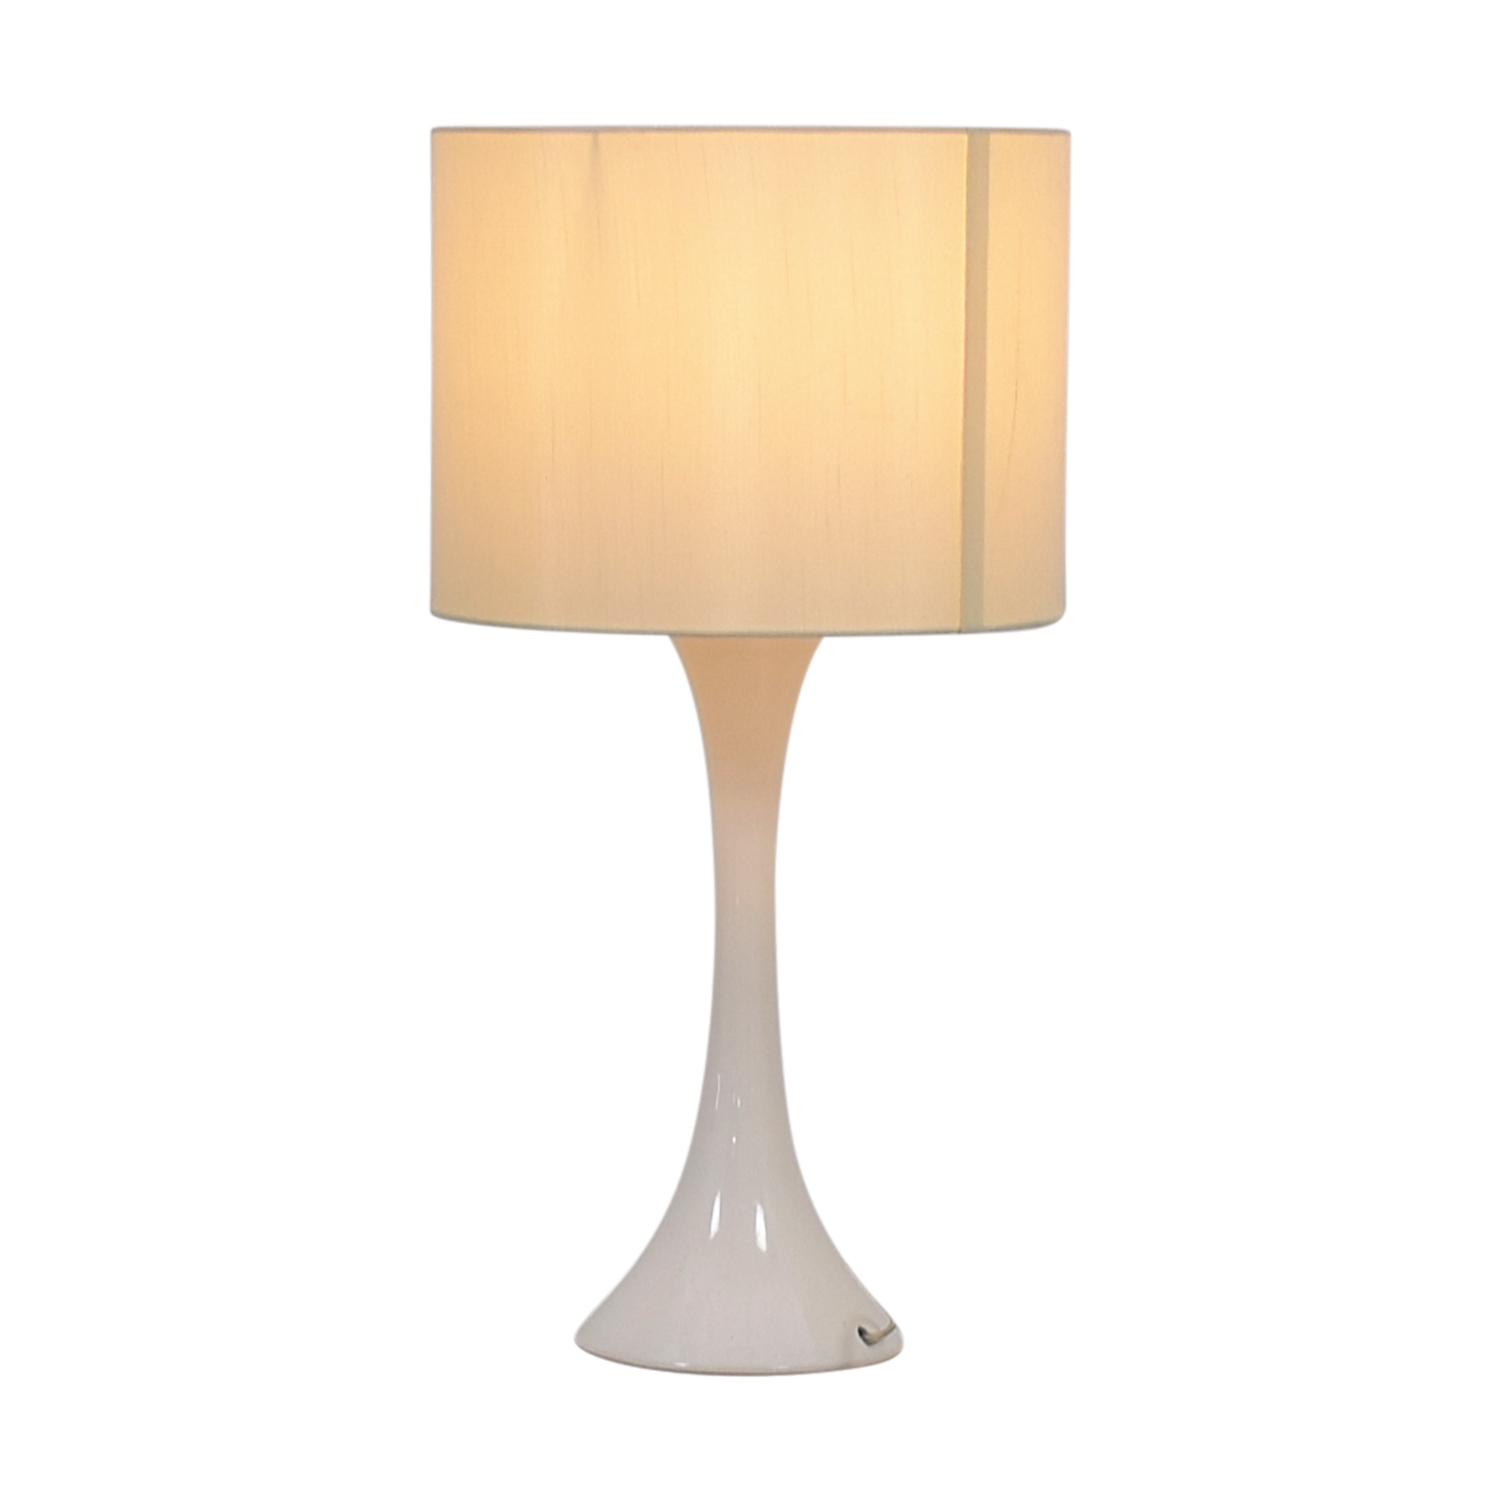 CB2 CB2 Ada White Table Lamp second hand